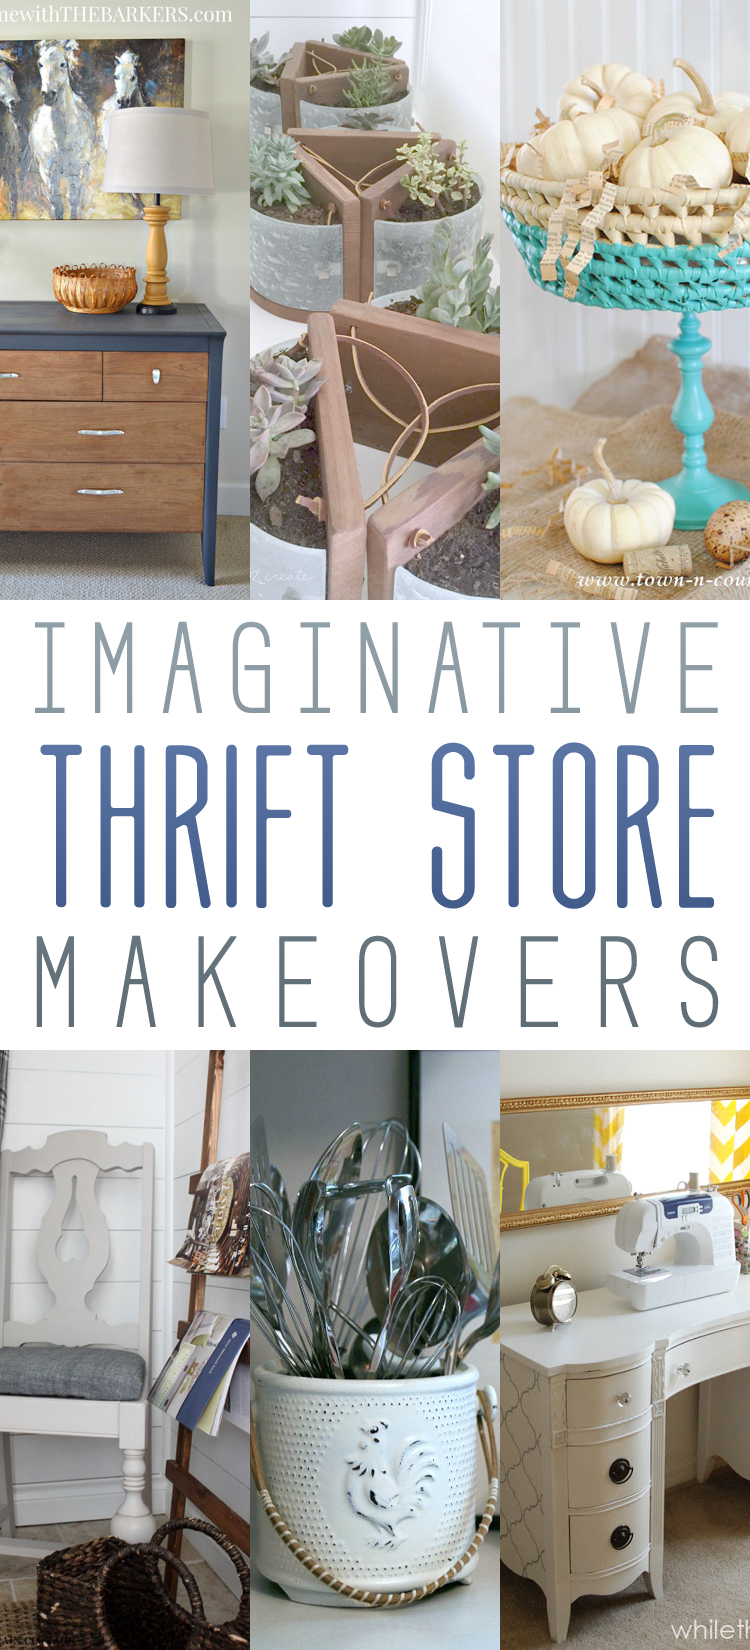 Imaginative Thrift Store Makeovers The Cottage Market